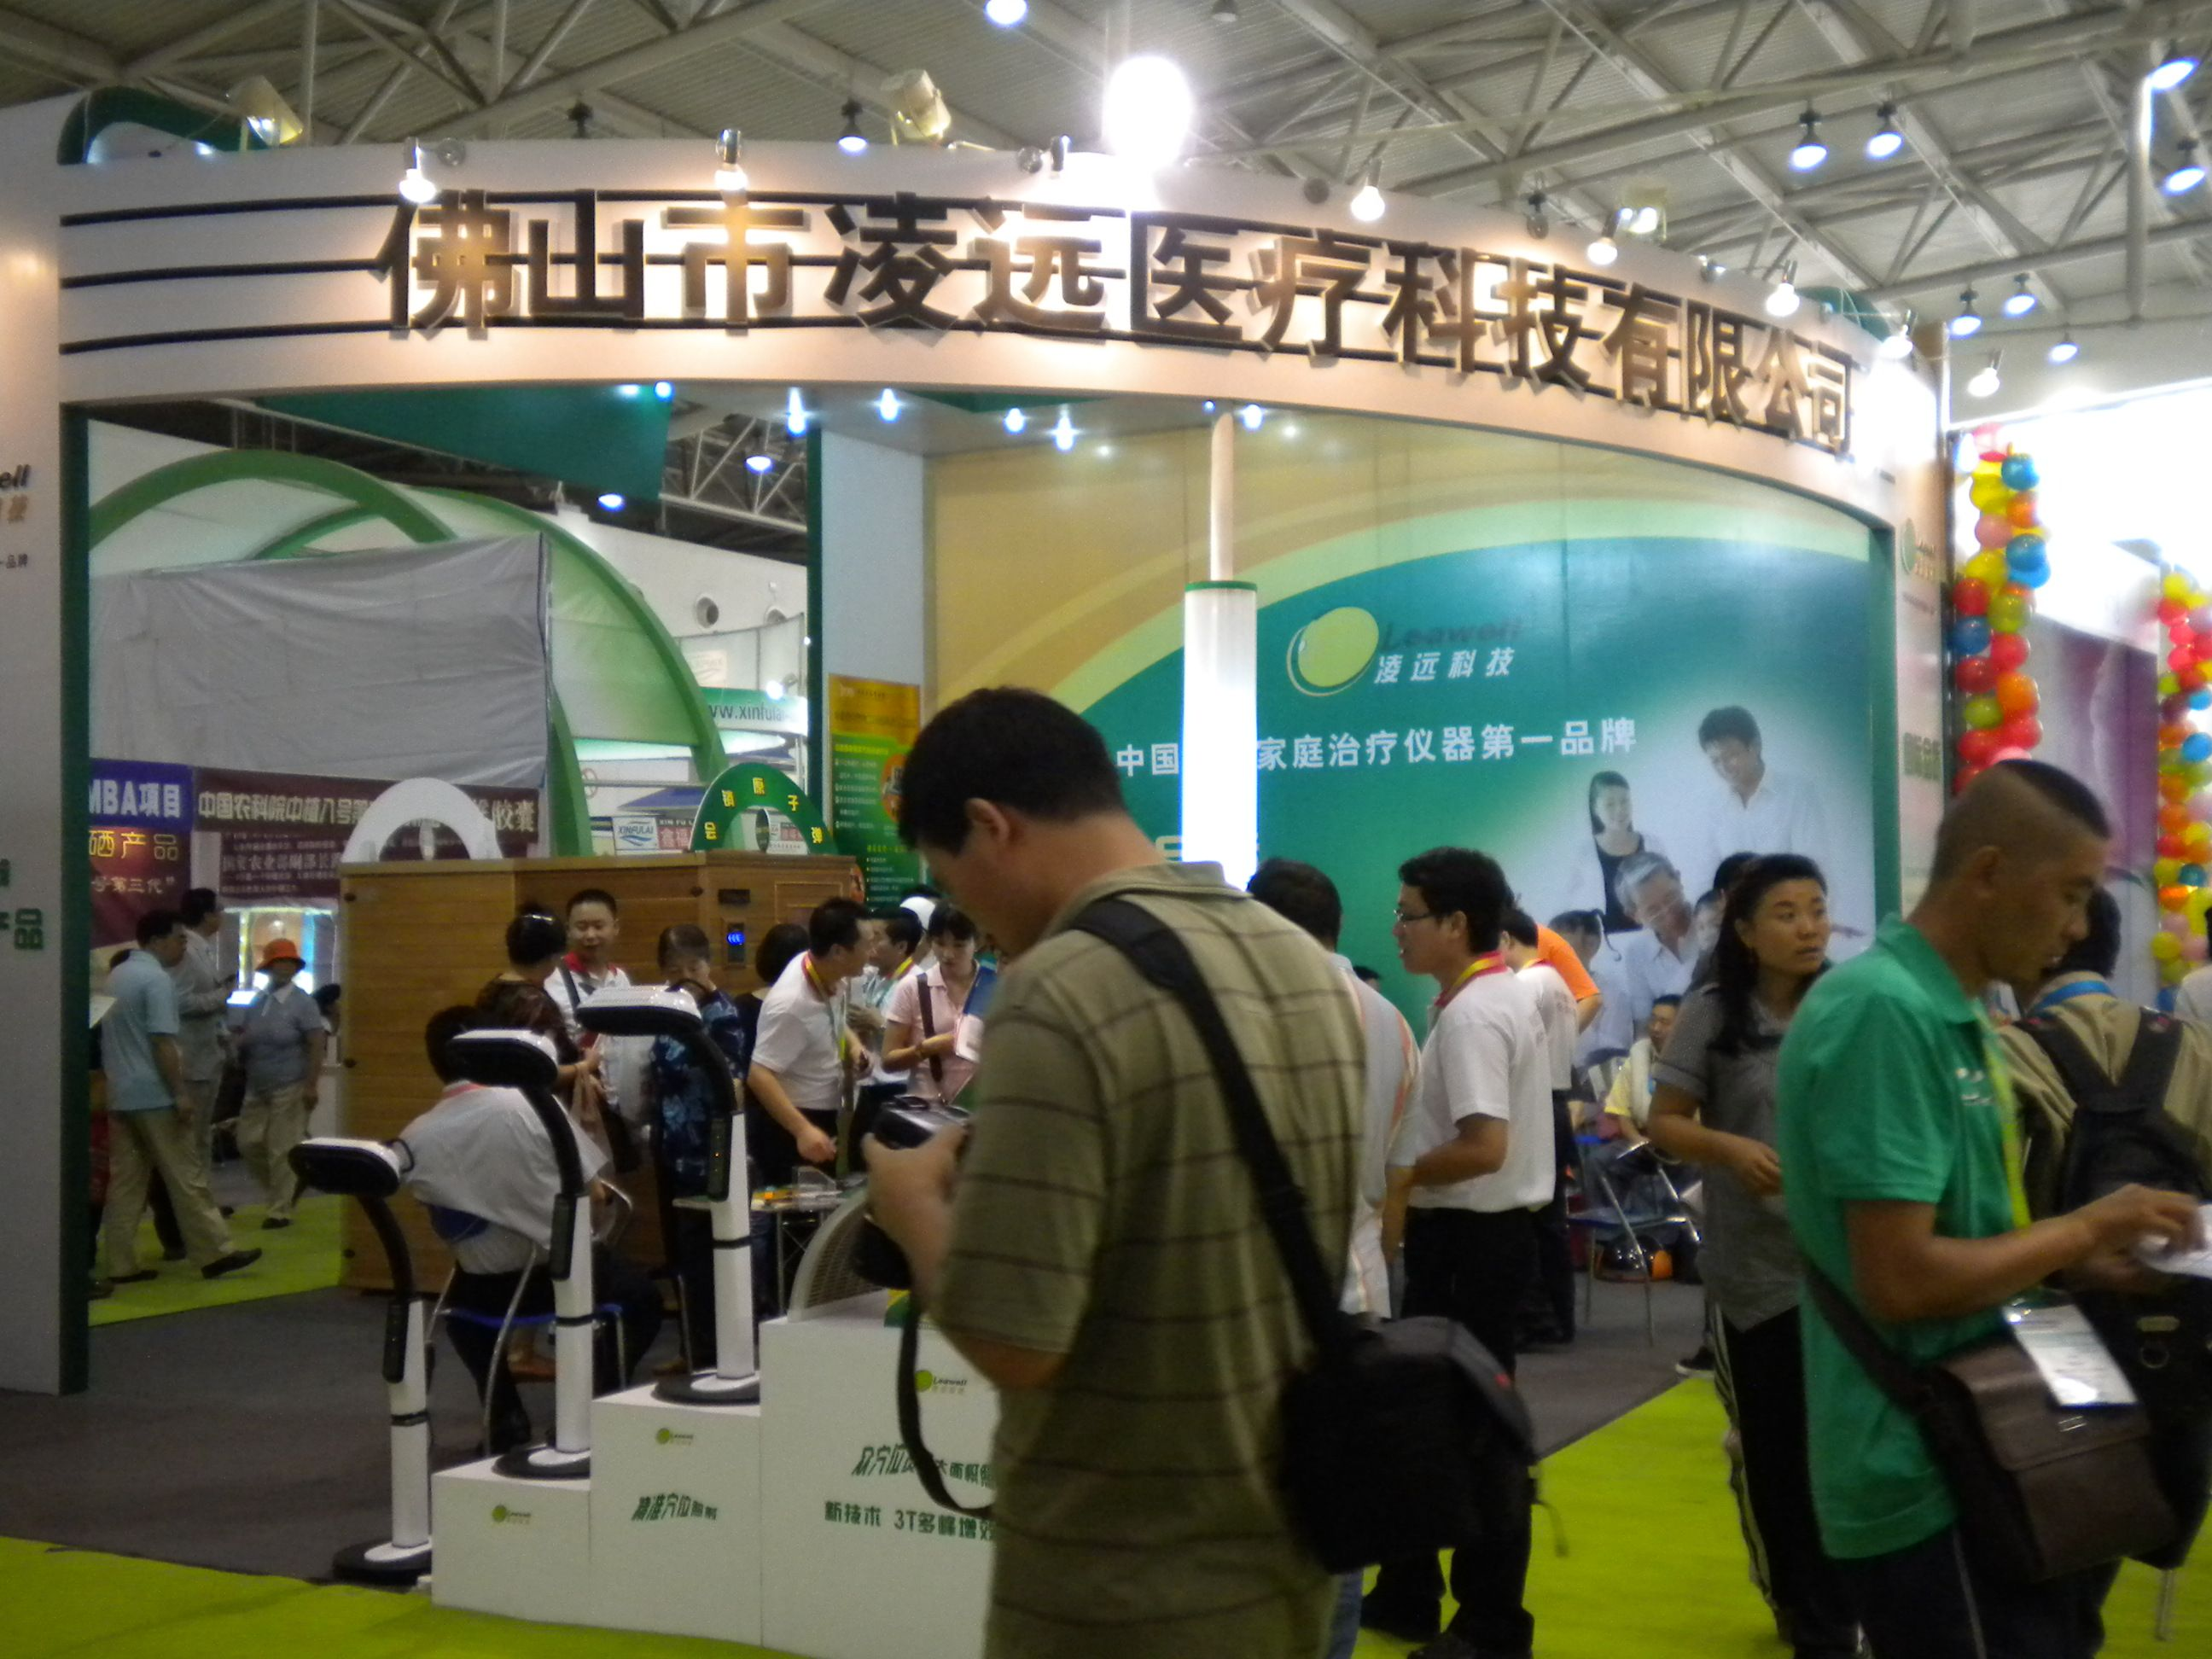 household expo осень 2013 схема